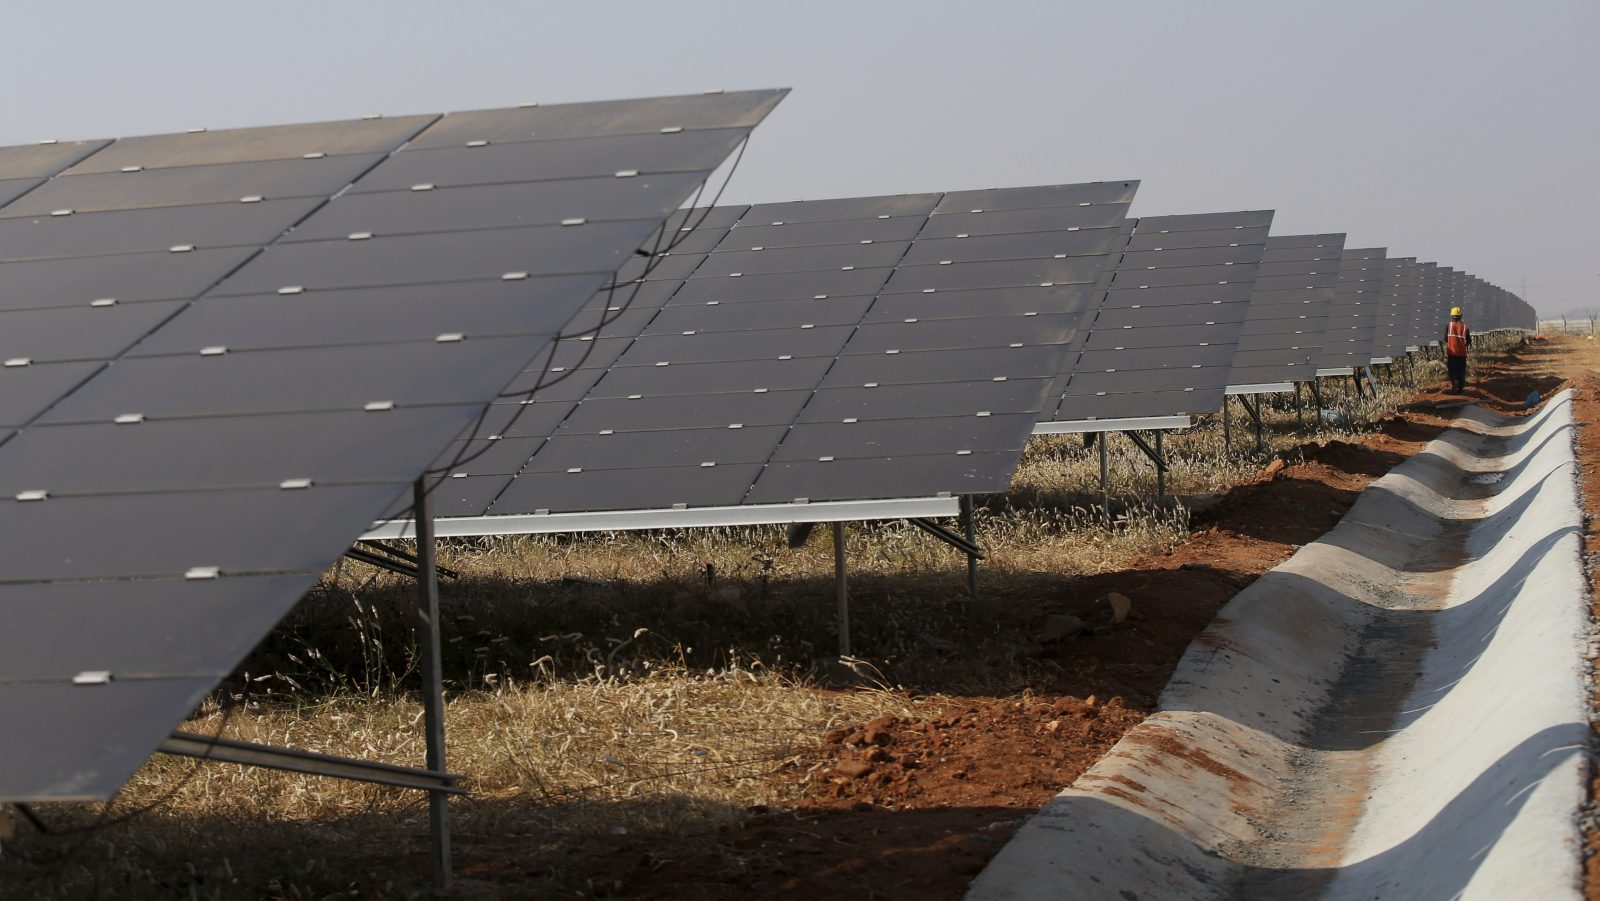 There's now a cheaper battery to store energy that will be great for developing countries